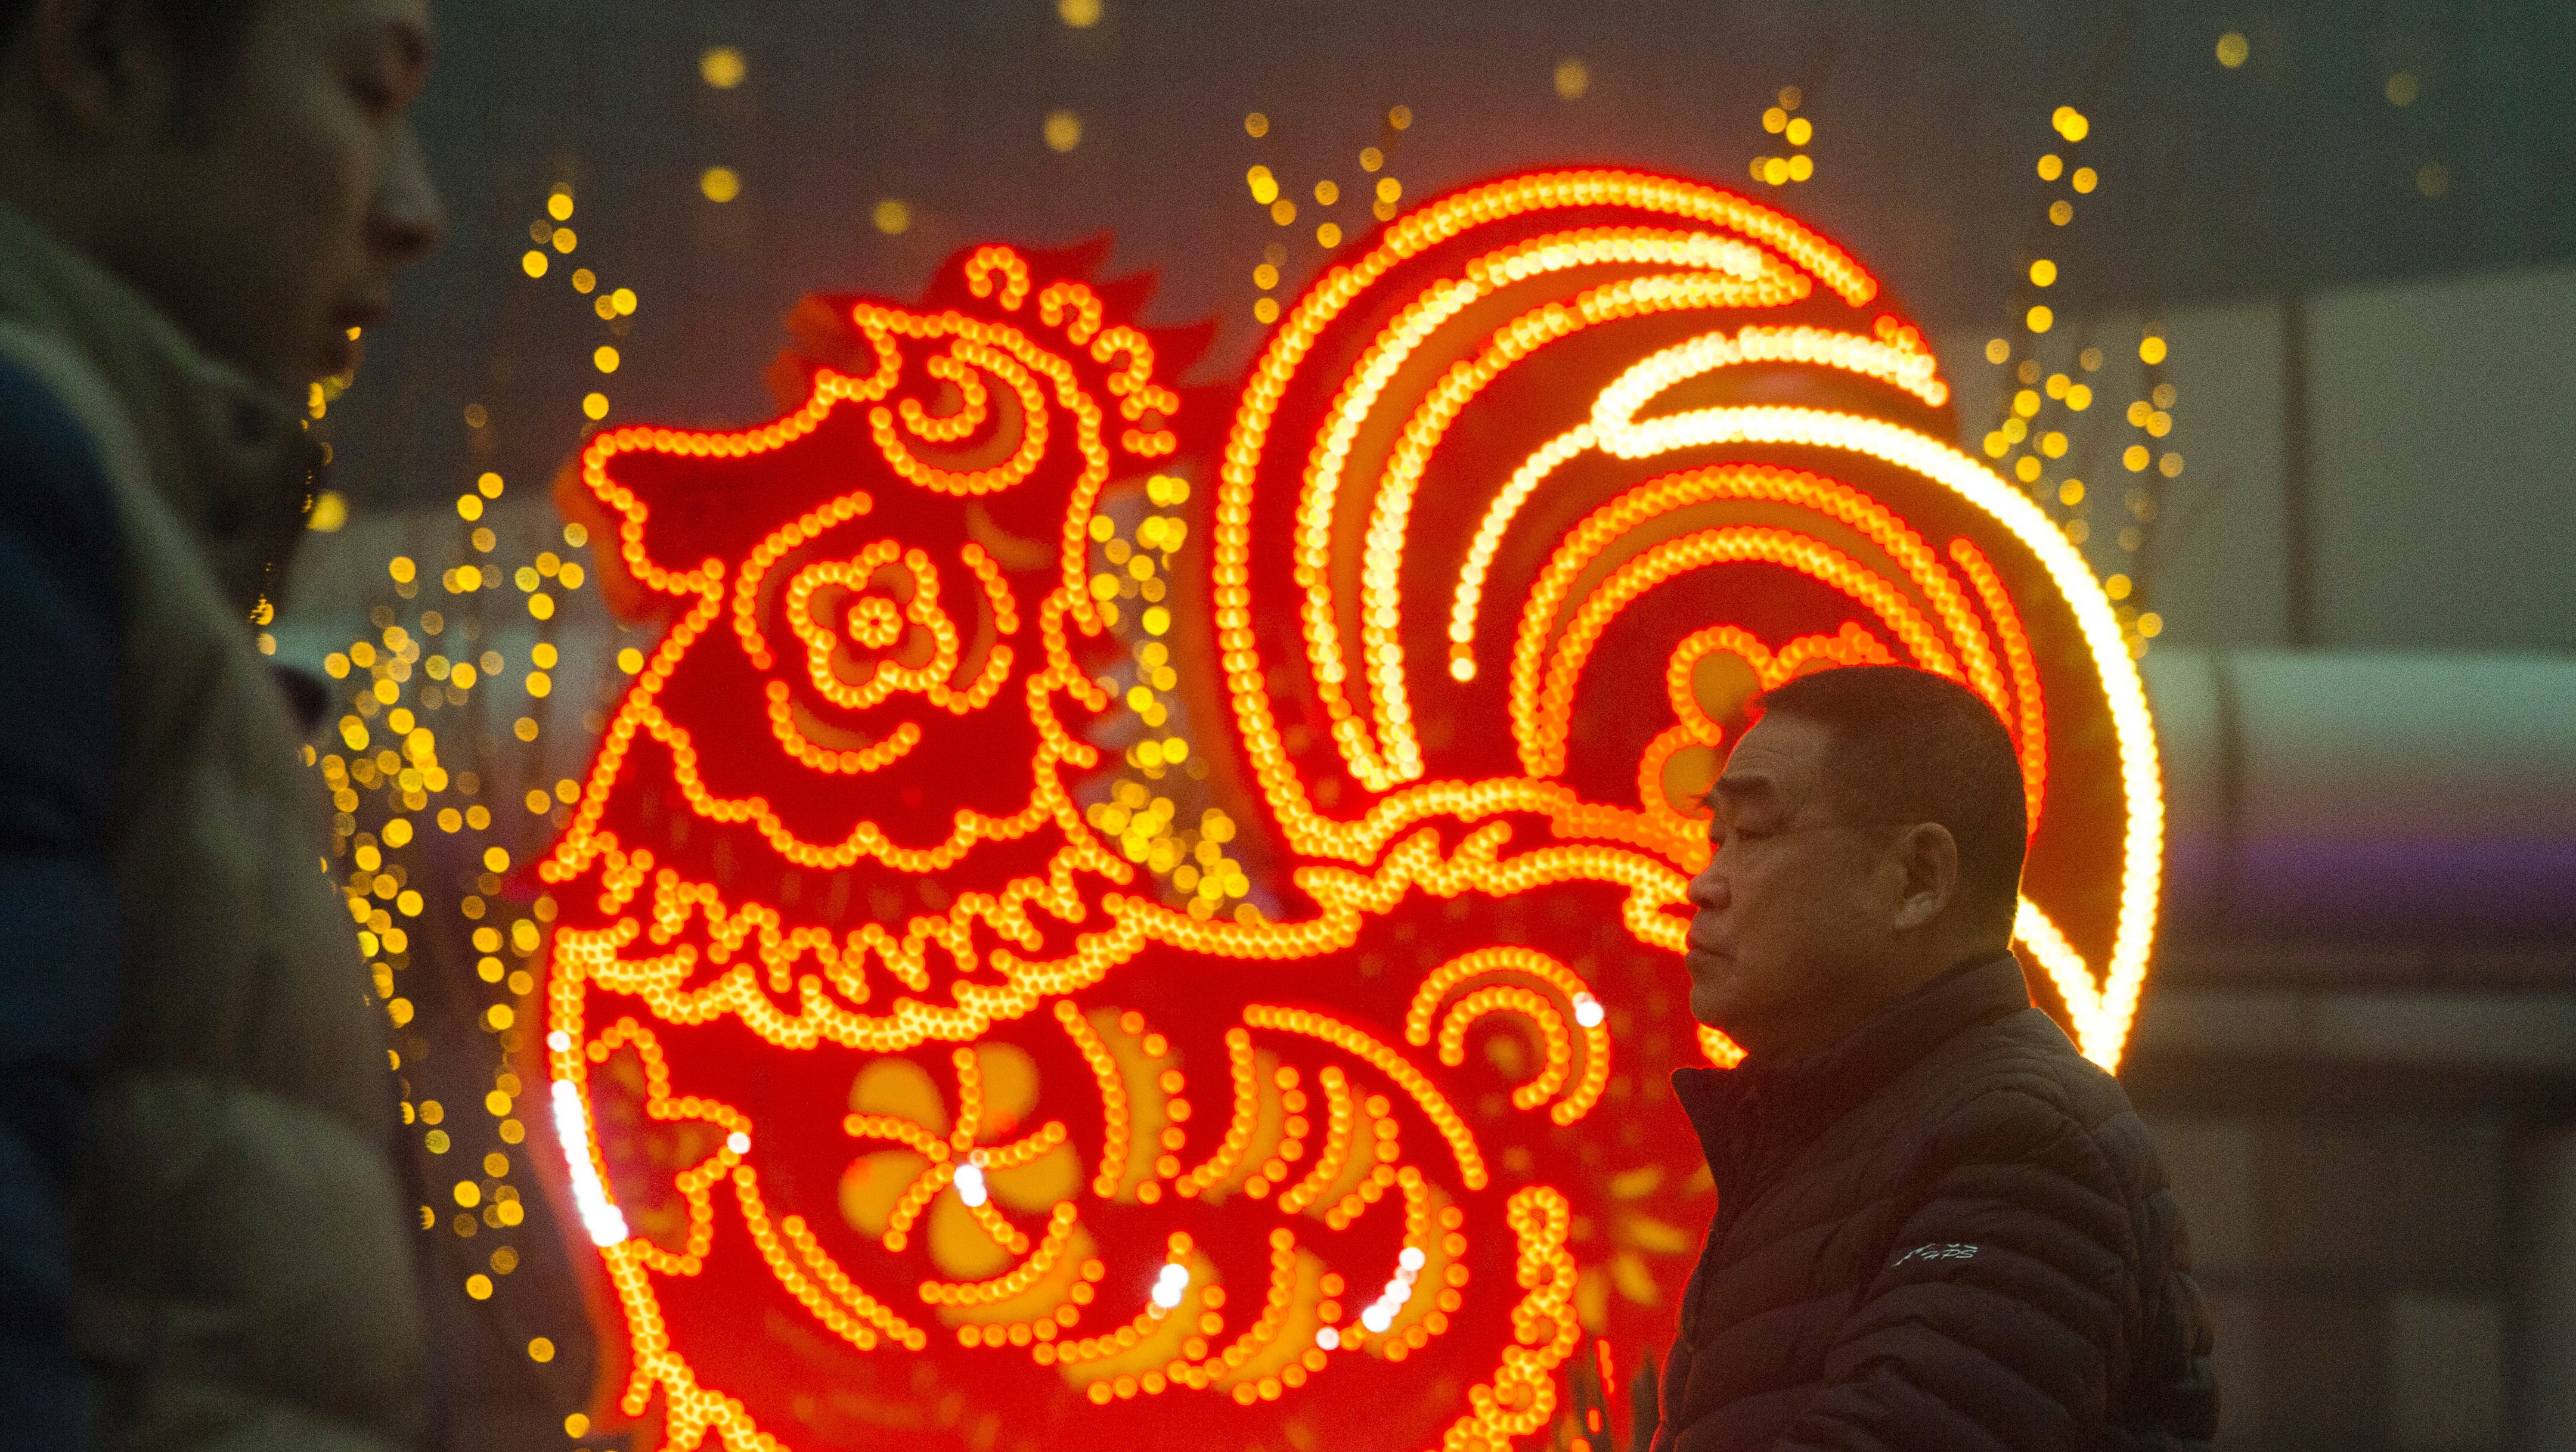 Chinese New Year 2018 How To Prepare For Lunar New Year According